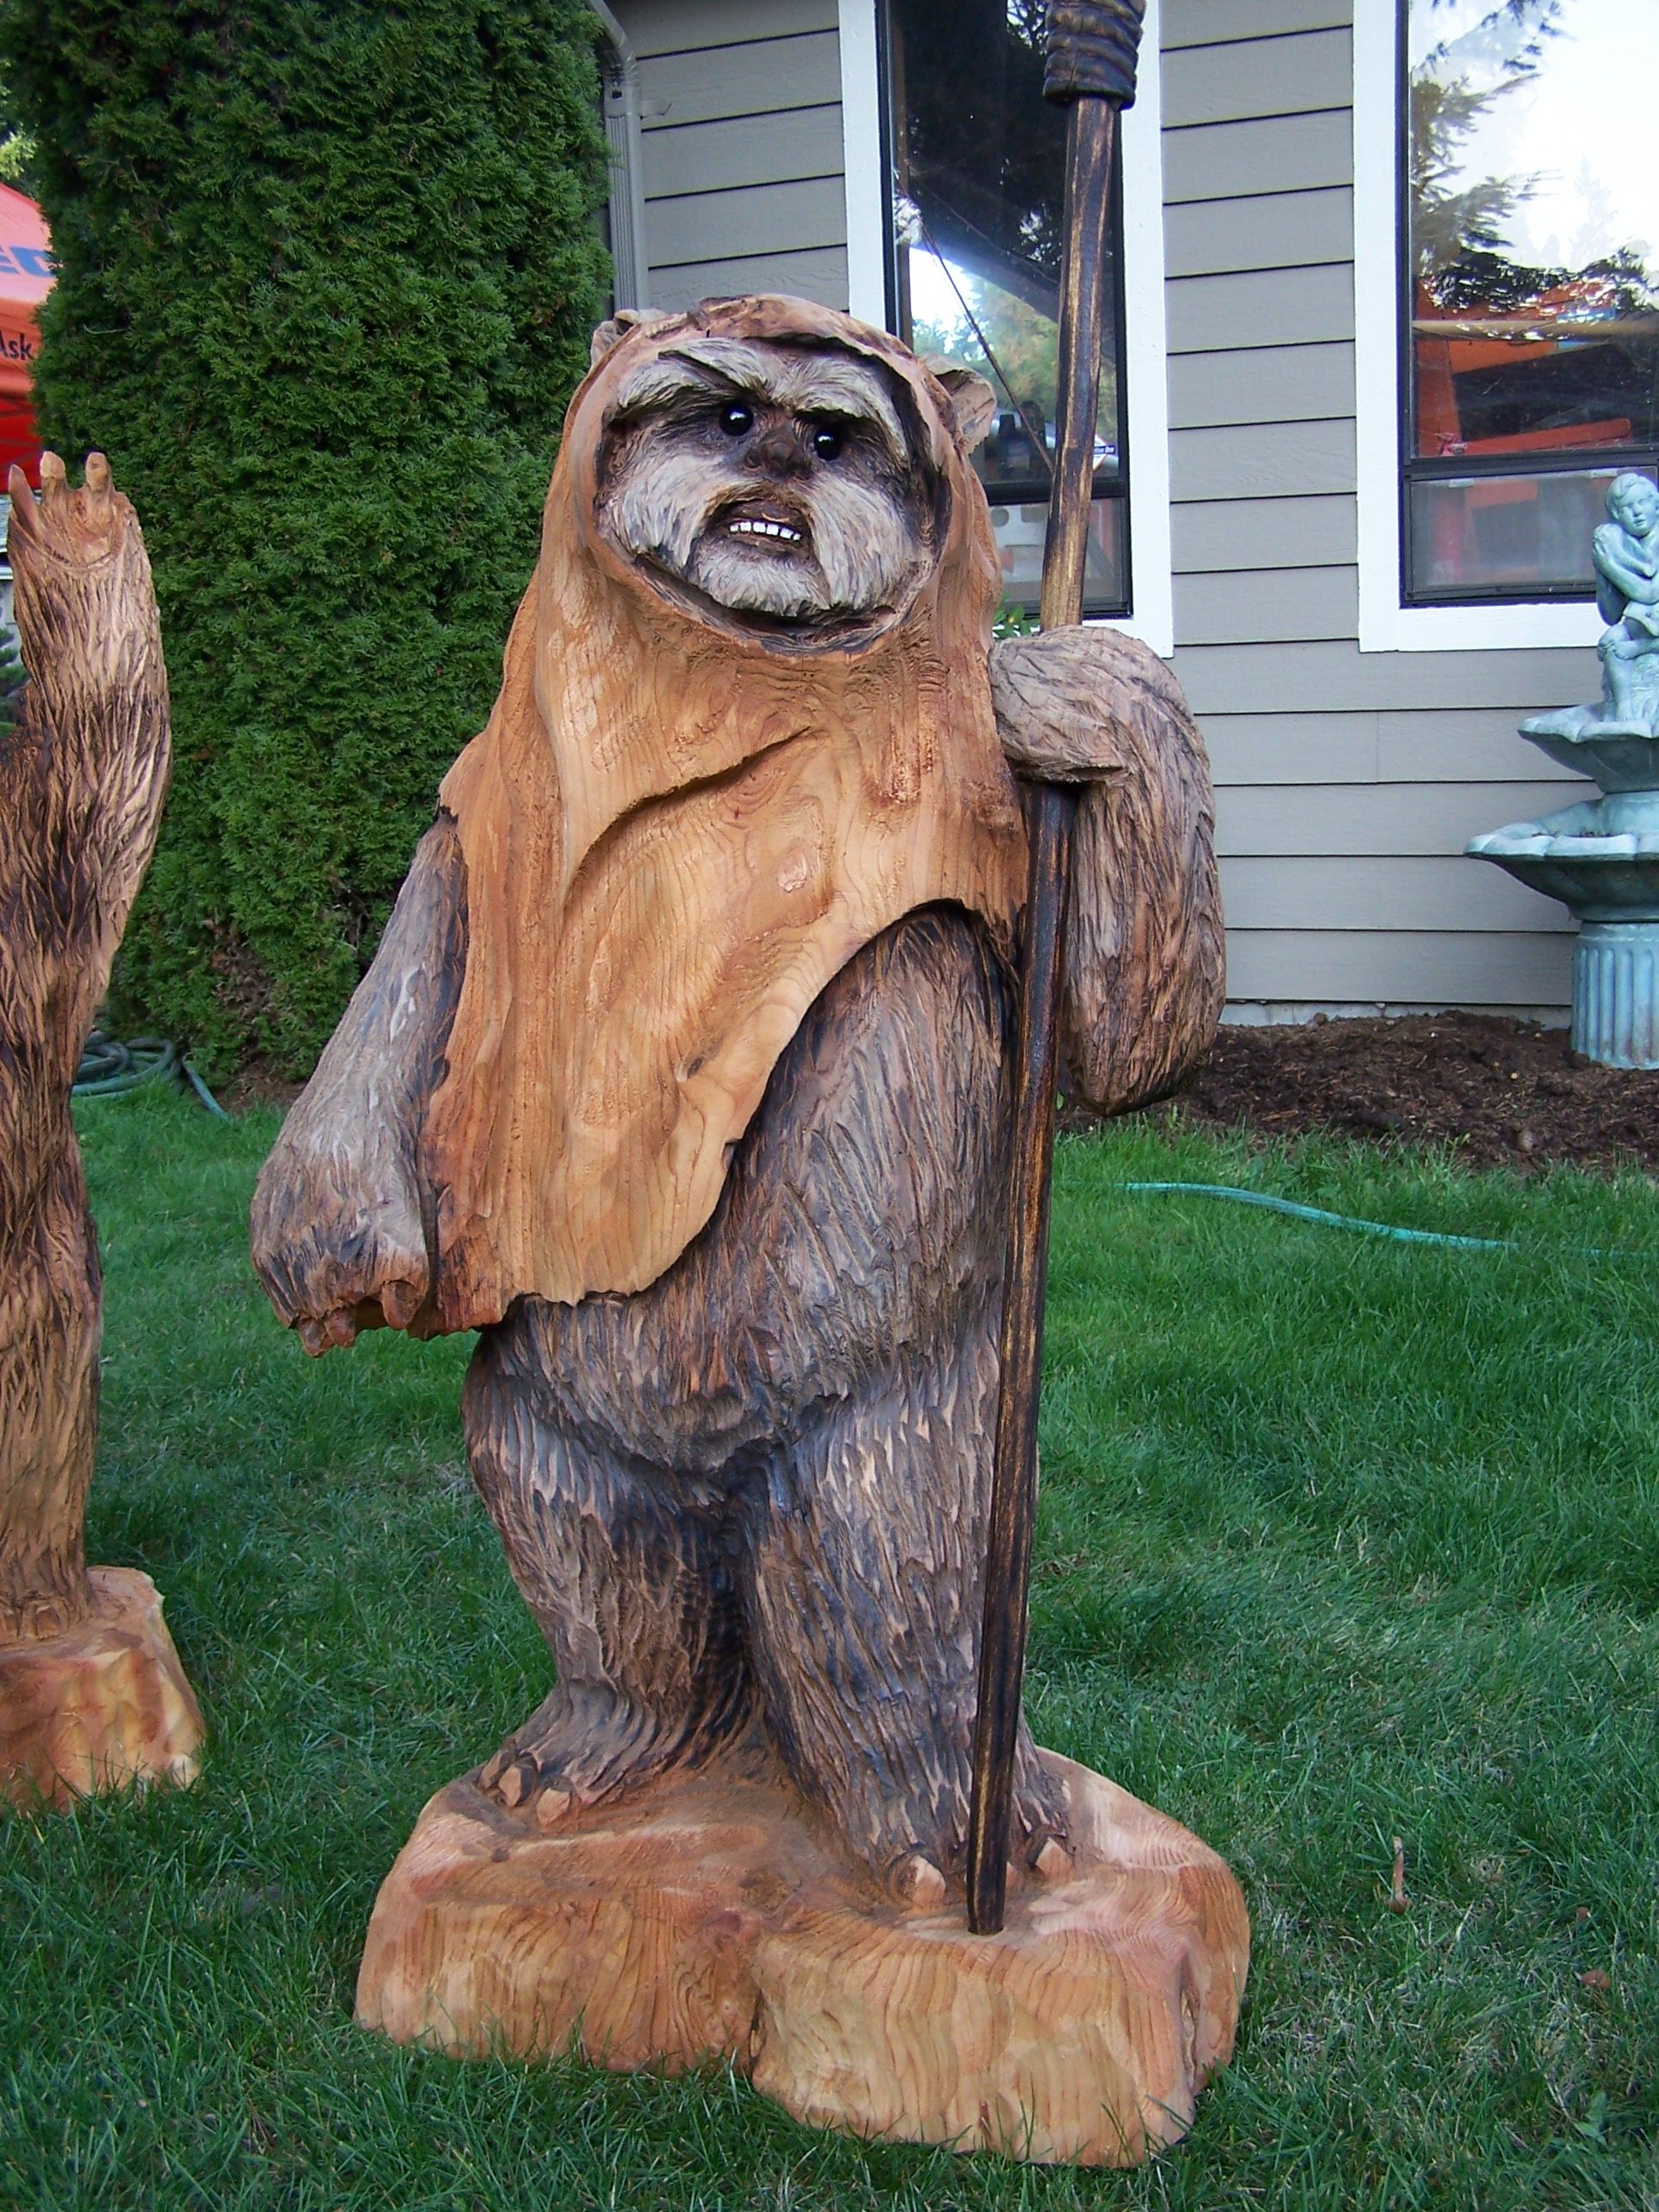 Chainsaw carving star wars figures for sierra snow park